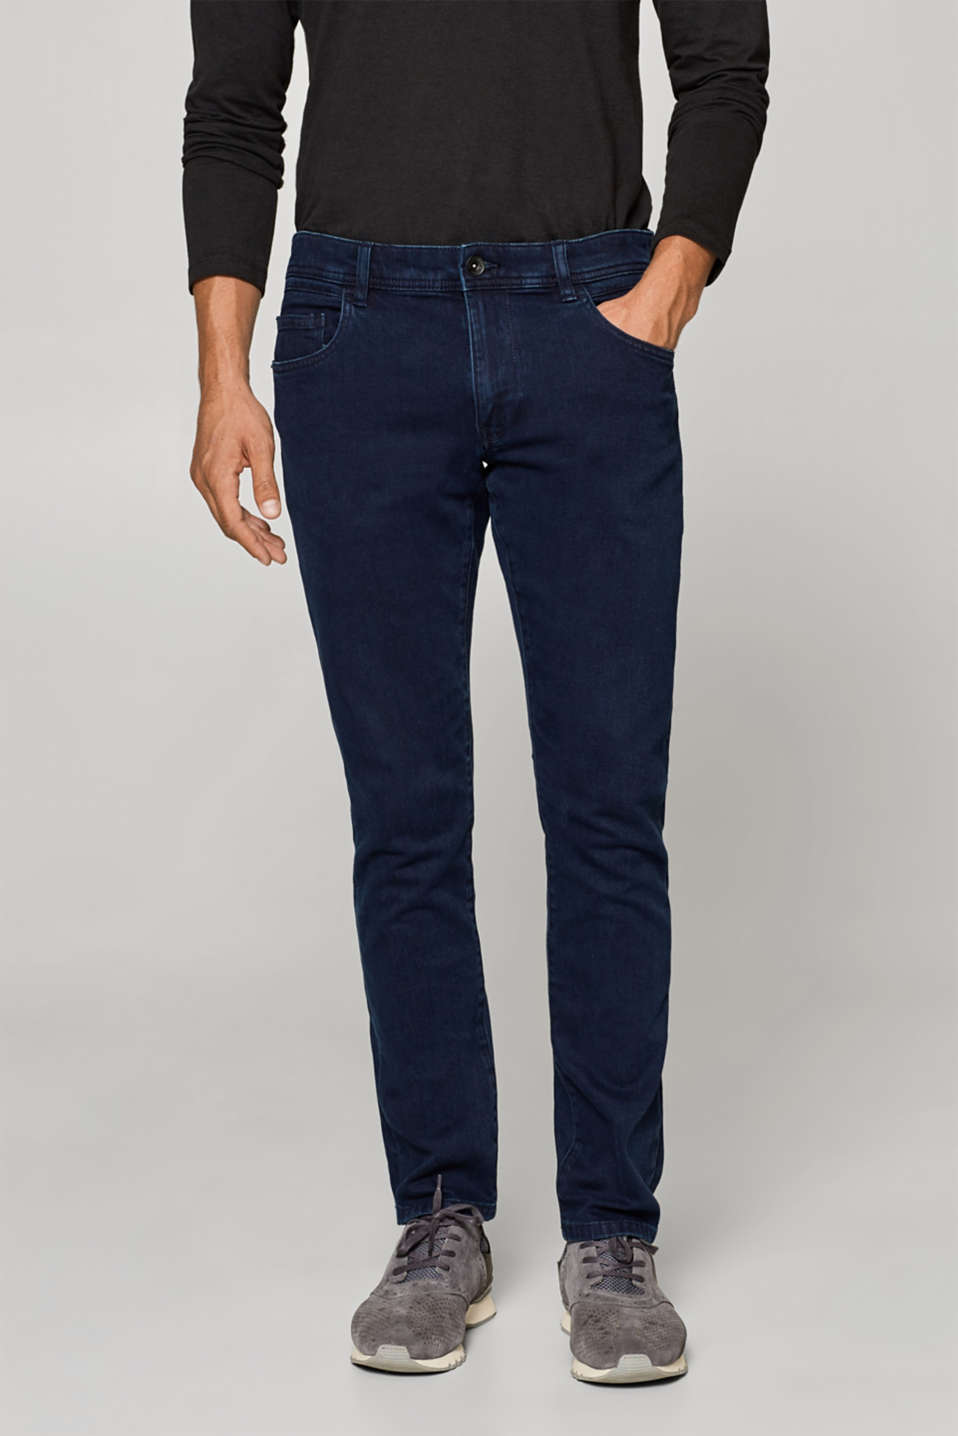 Esprit - 5-pocket-stretchjeans